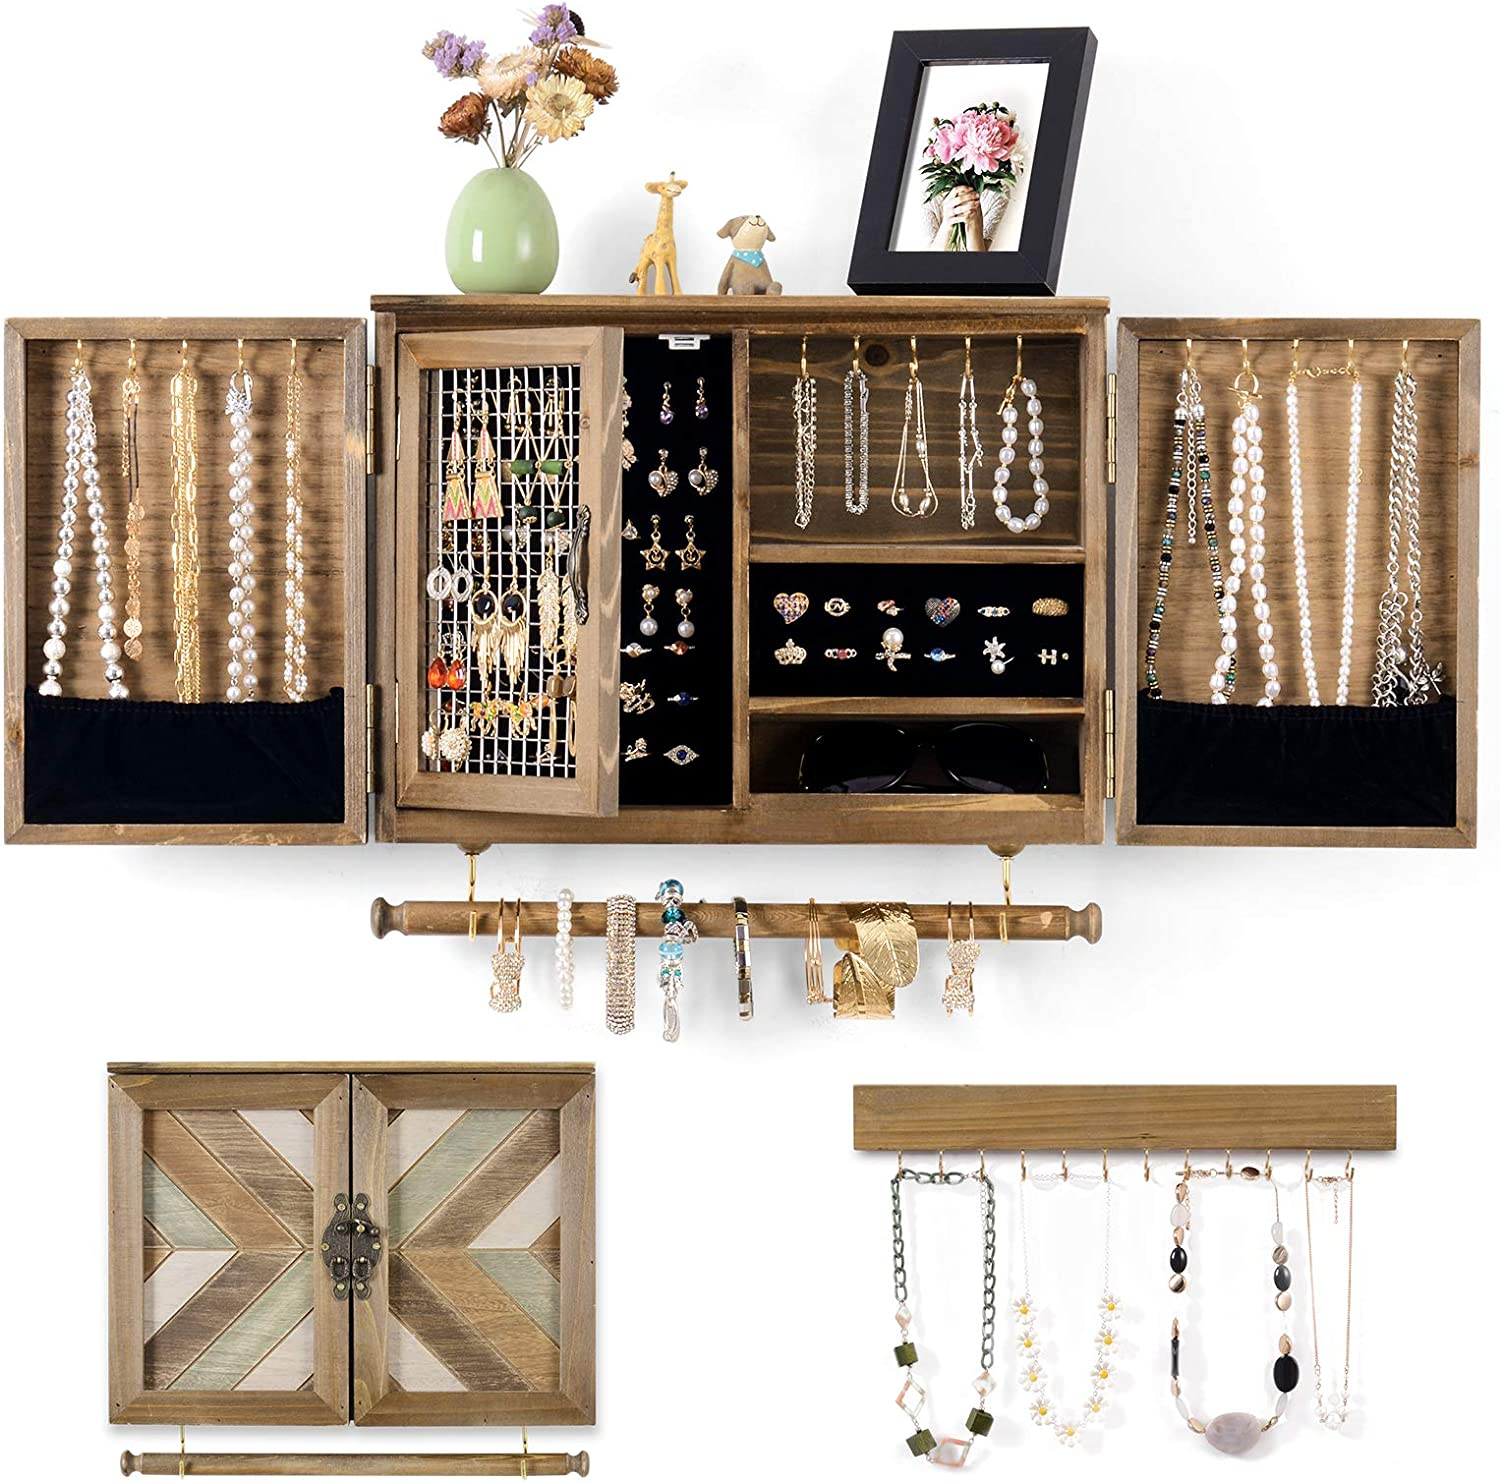 Ikkle Wooden Jewelry Organizer Wall Mounted Rustic Jewelry Holder with Wooden Barn Door for Necklaces Earrings Bracelets Ring, and Removable Bracelet Rod with Hooks Organizer for Hanging Jewelry